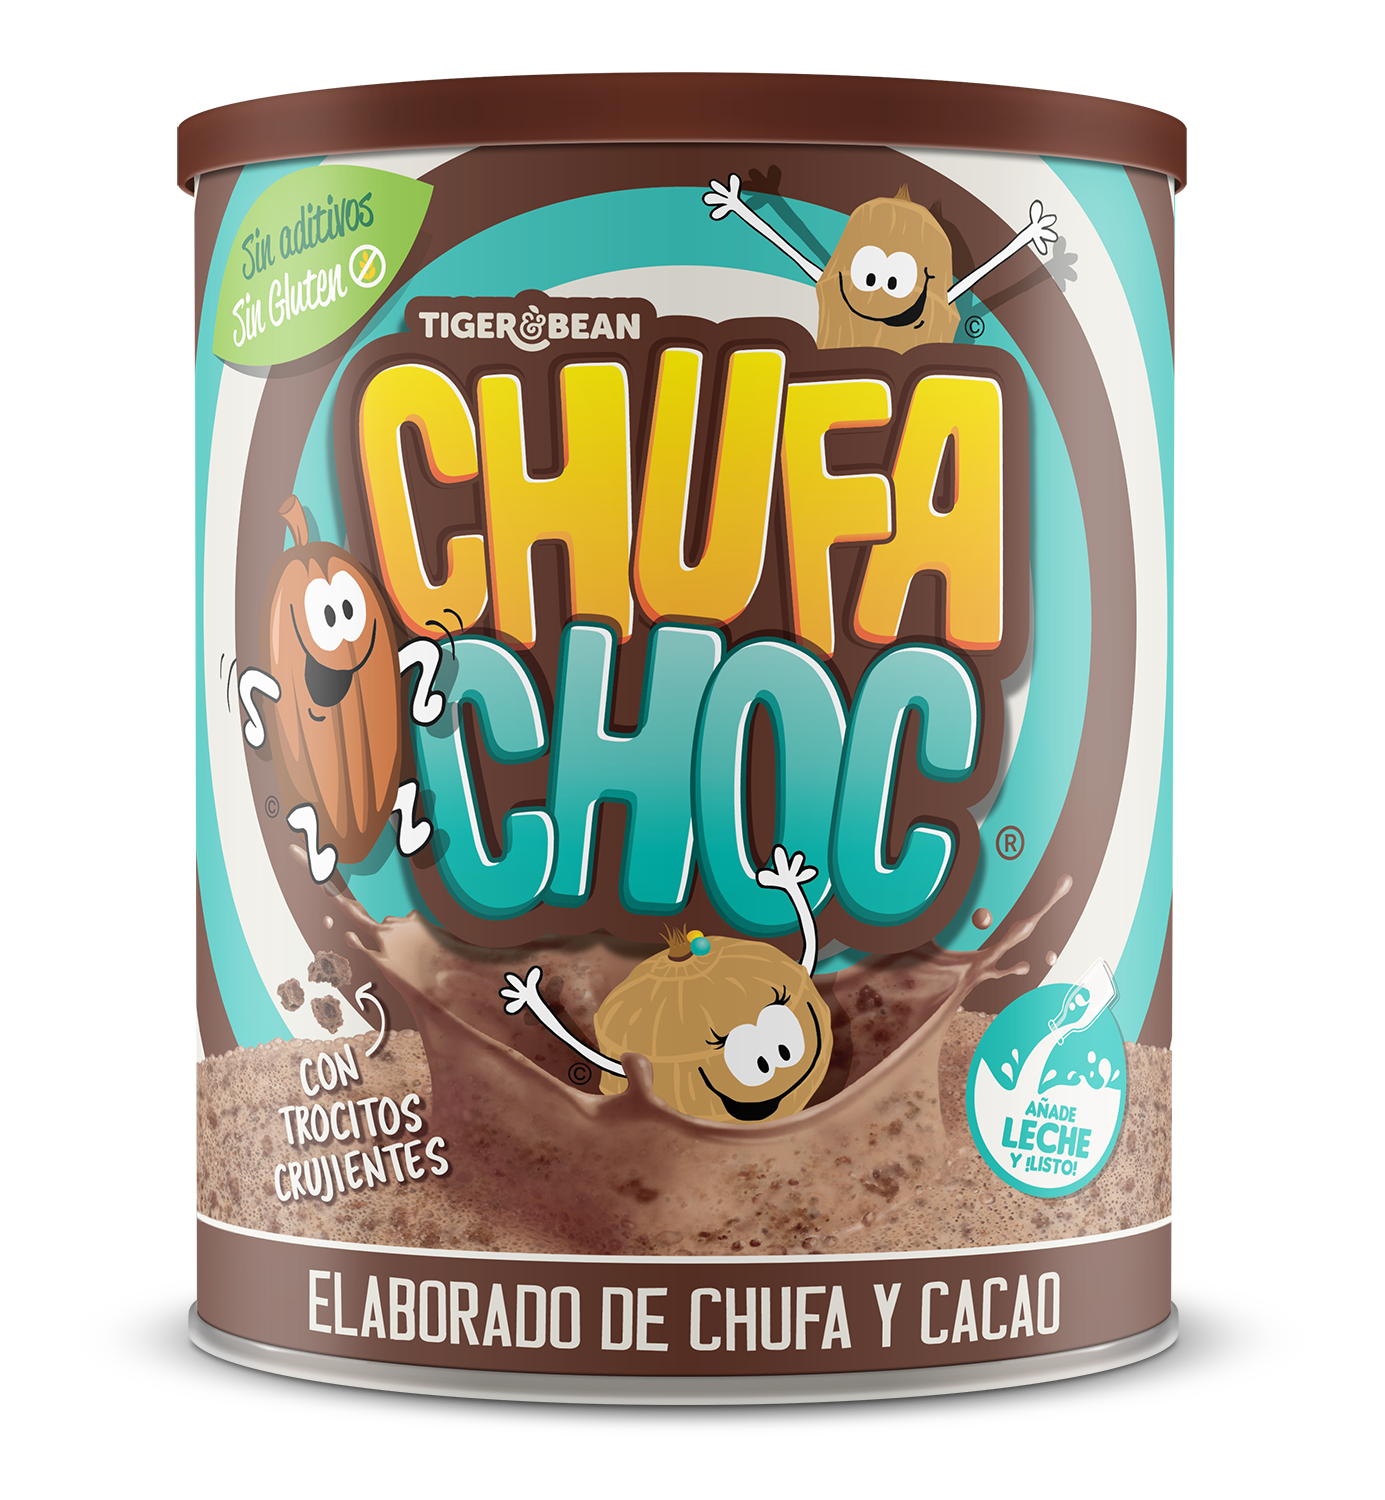 Tin of ChufaChoc - A choc flavoured milk drink made from tiger nut ( Chufa ) and cocoa - Tigernuts are a source of prebiotic fibre